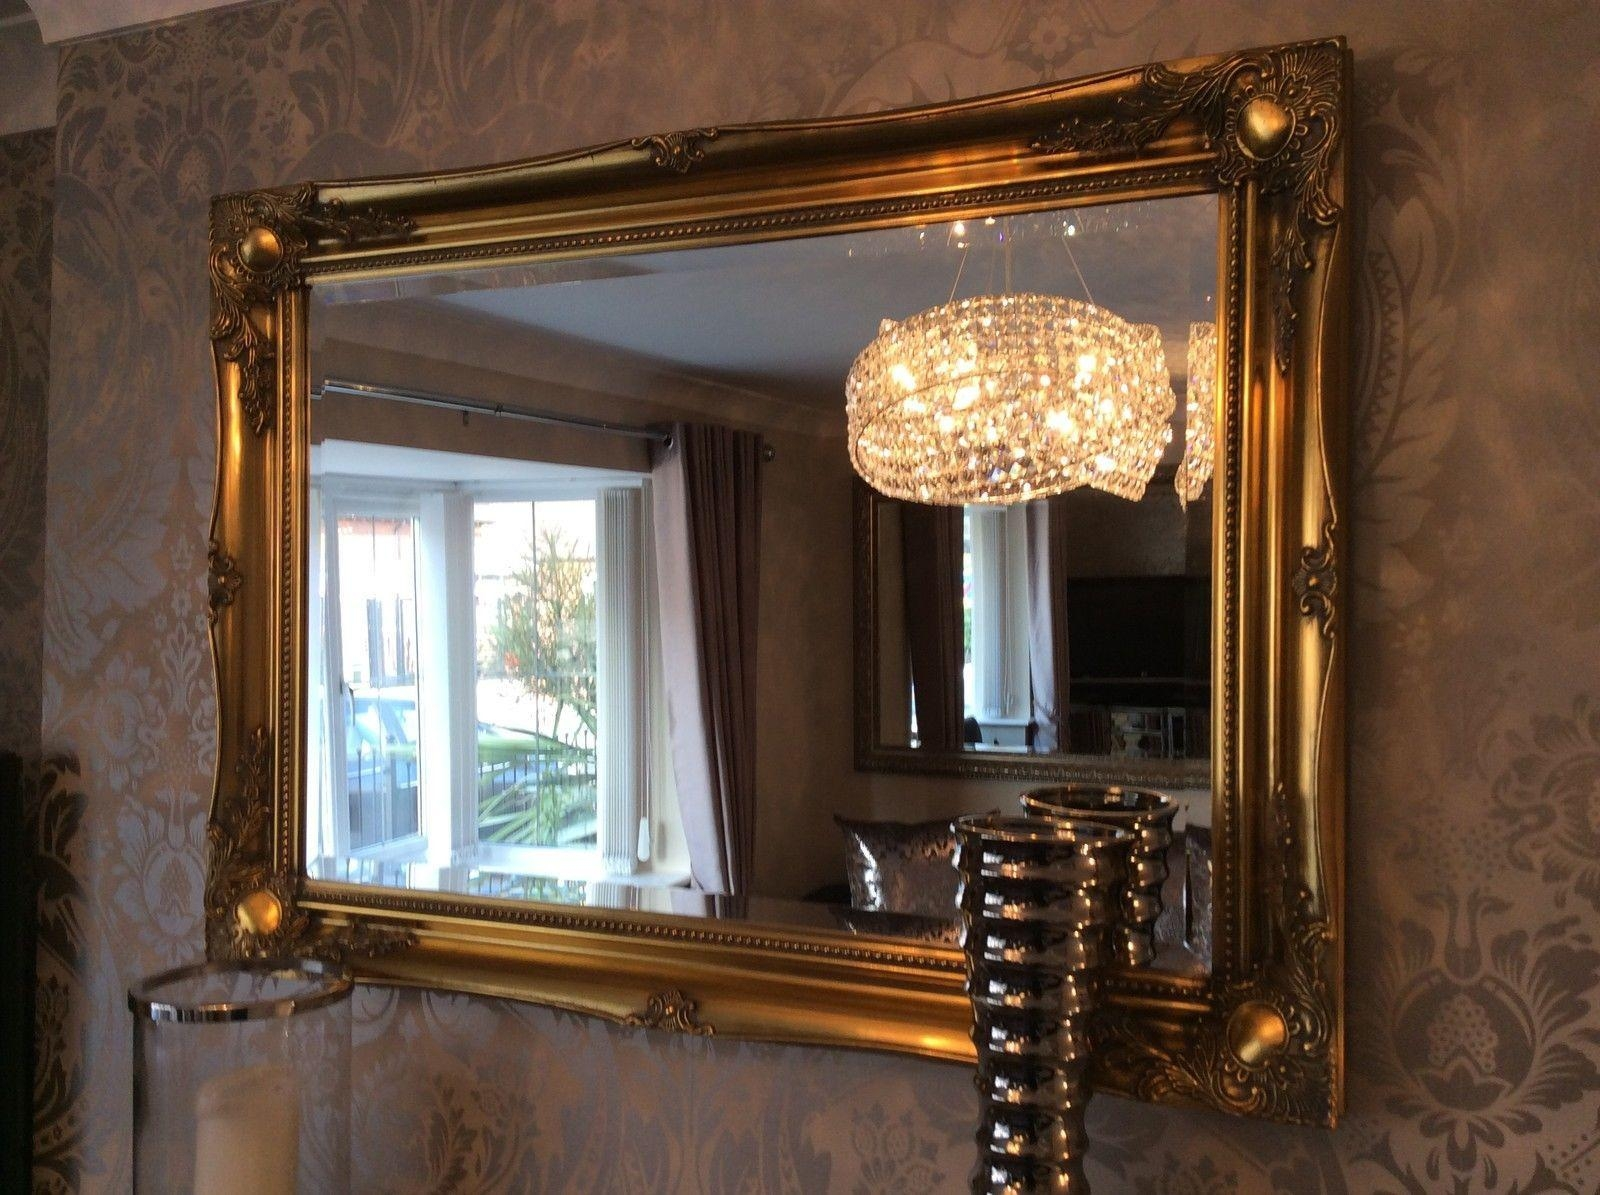 Download Decorative Gold Mirrors | Gen4Congress In Antique Gold Mirrors For Sale (Image 9 of 20)